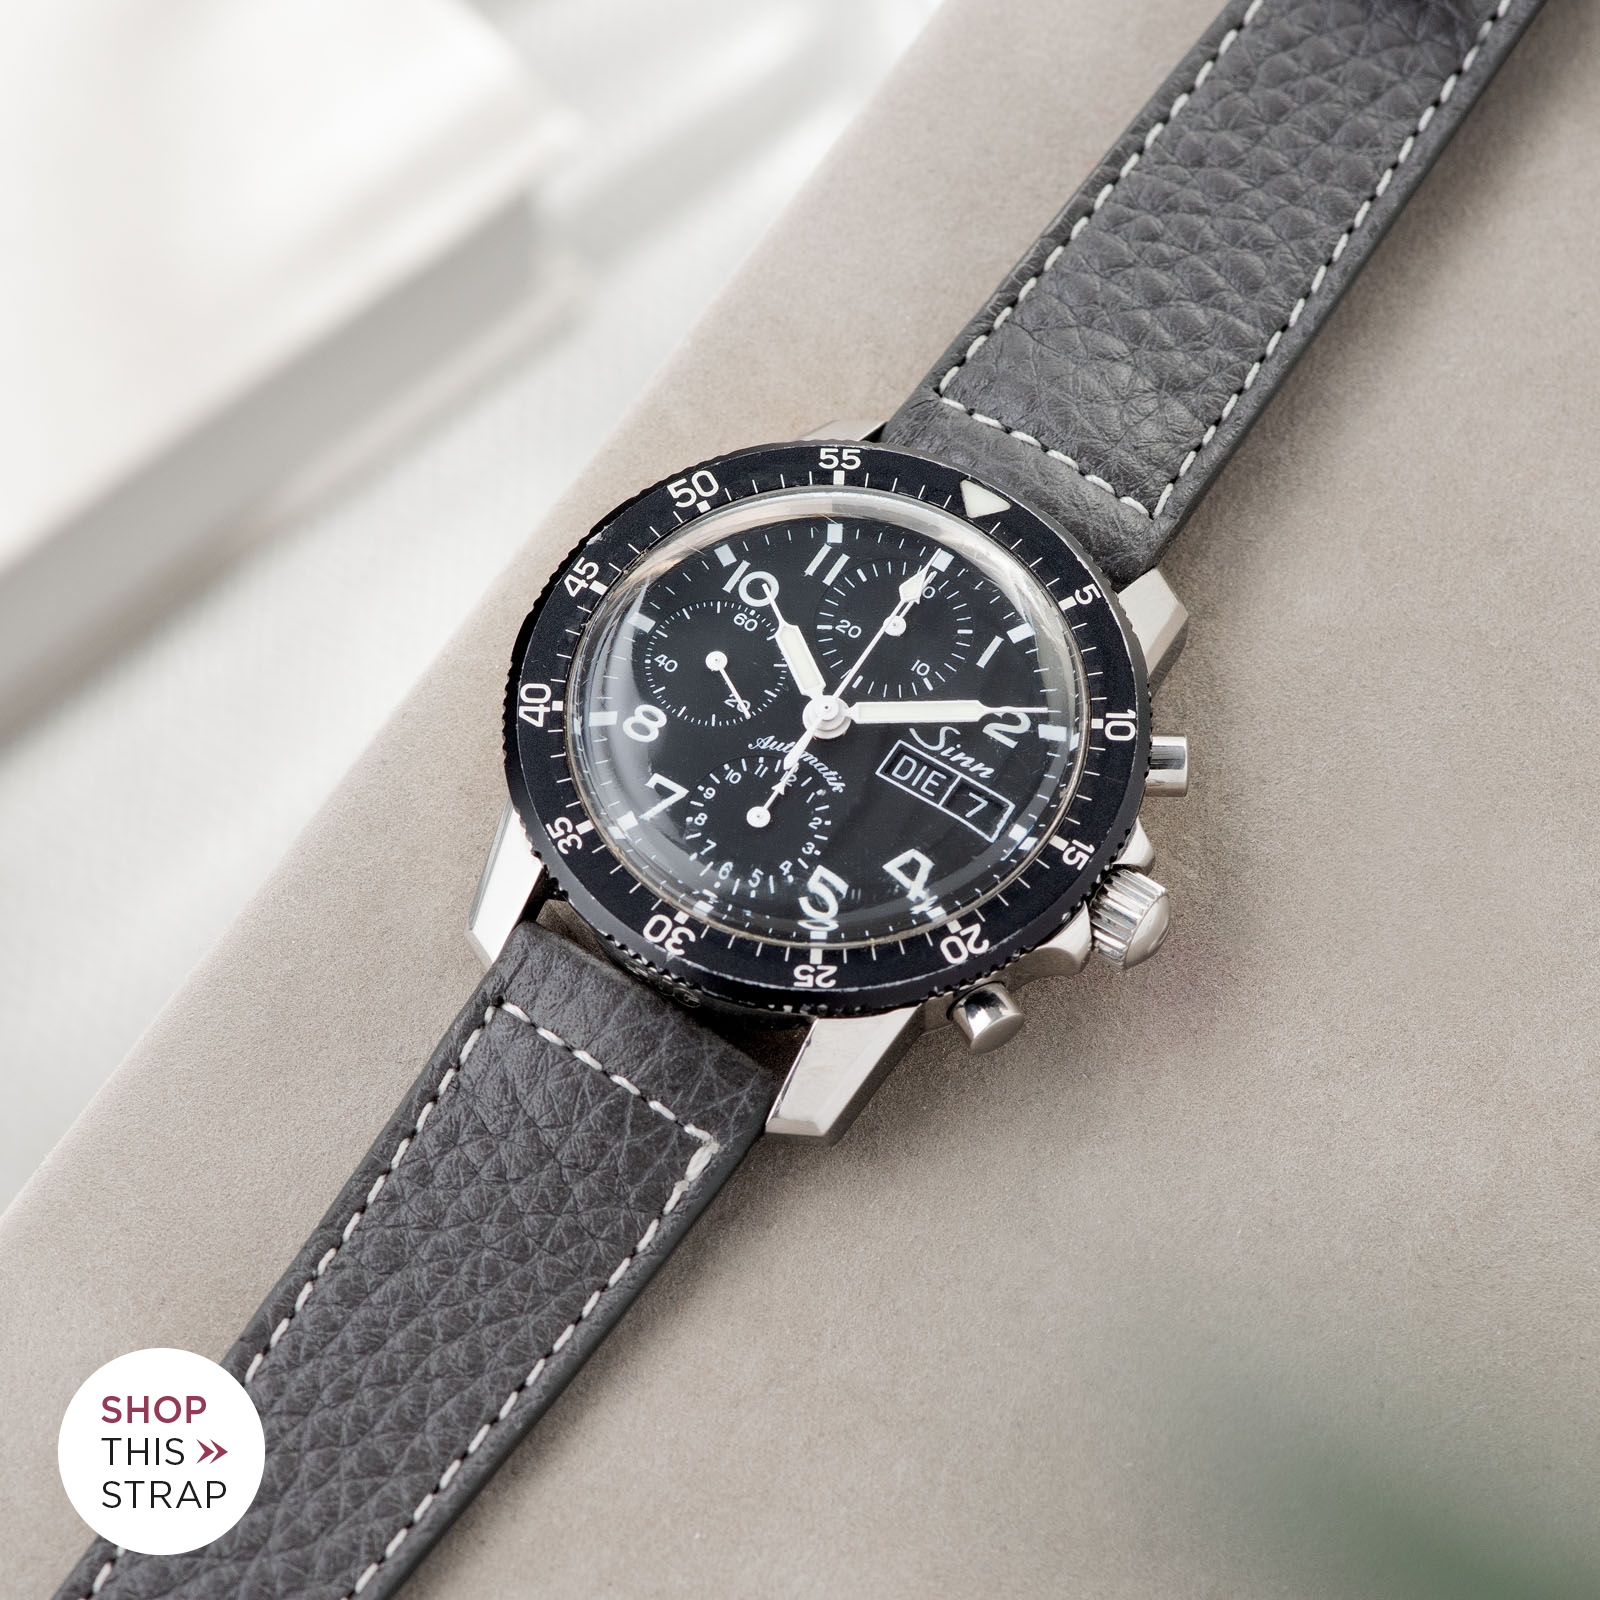 Bulang and Sons_Strap Guide_Sinn 103_Elephant Grey Leather Watch Strap